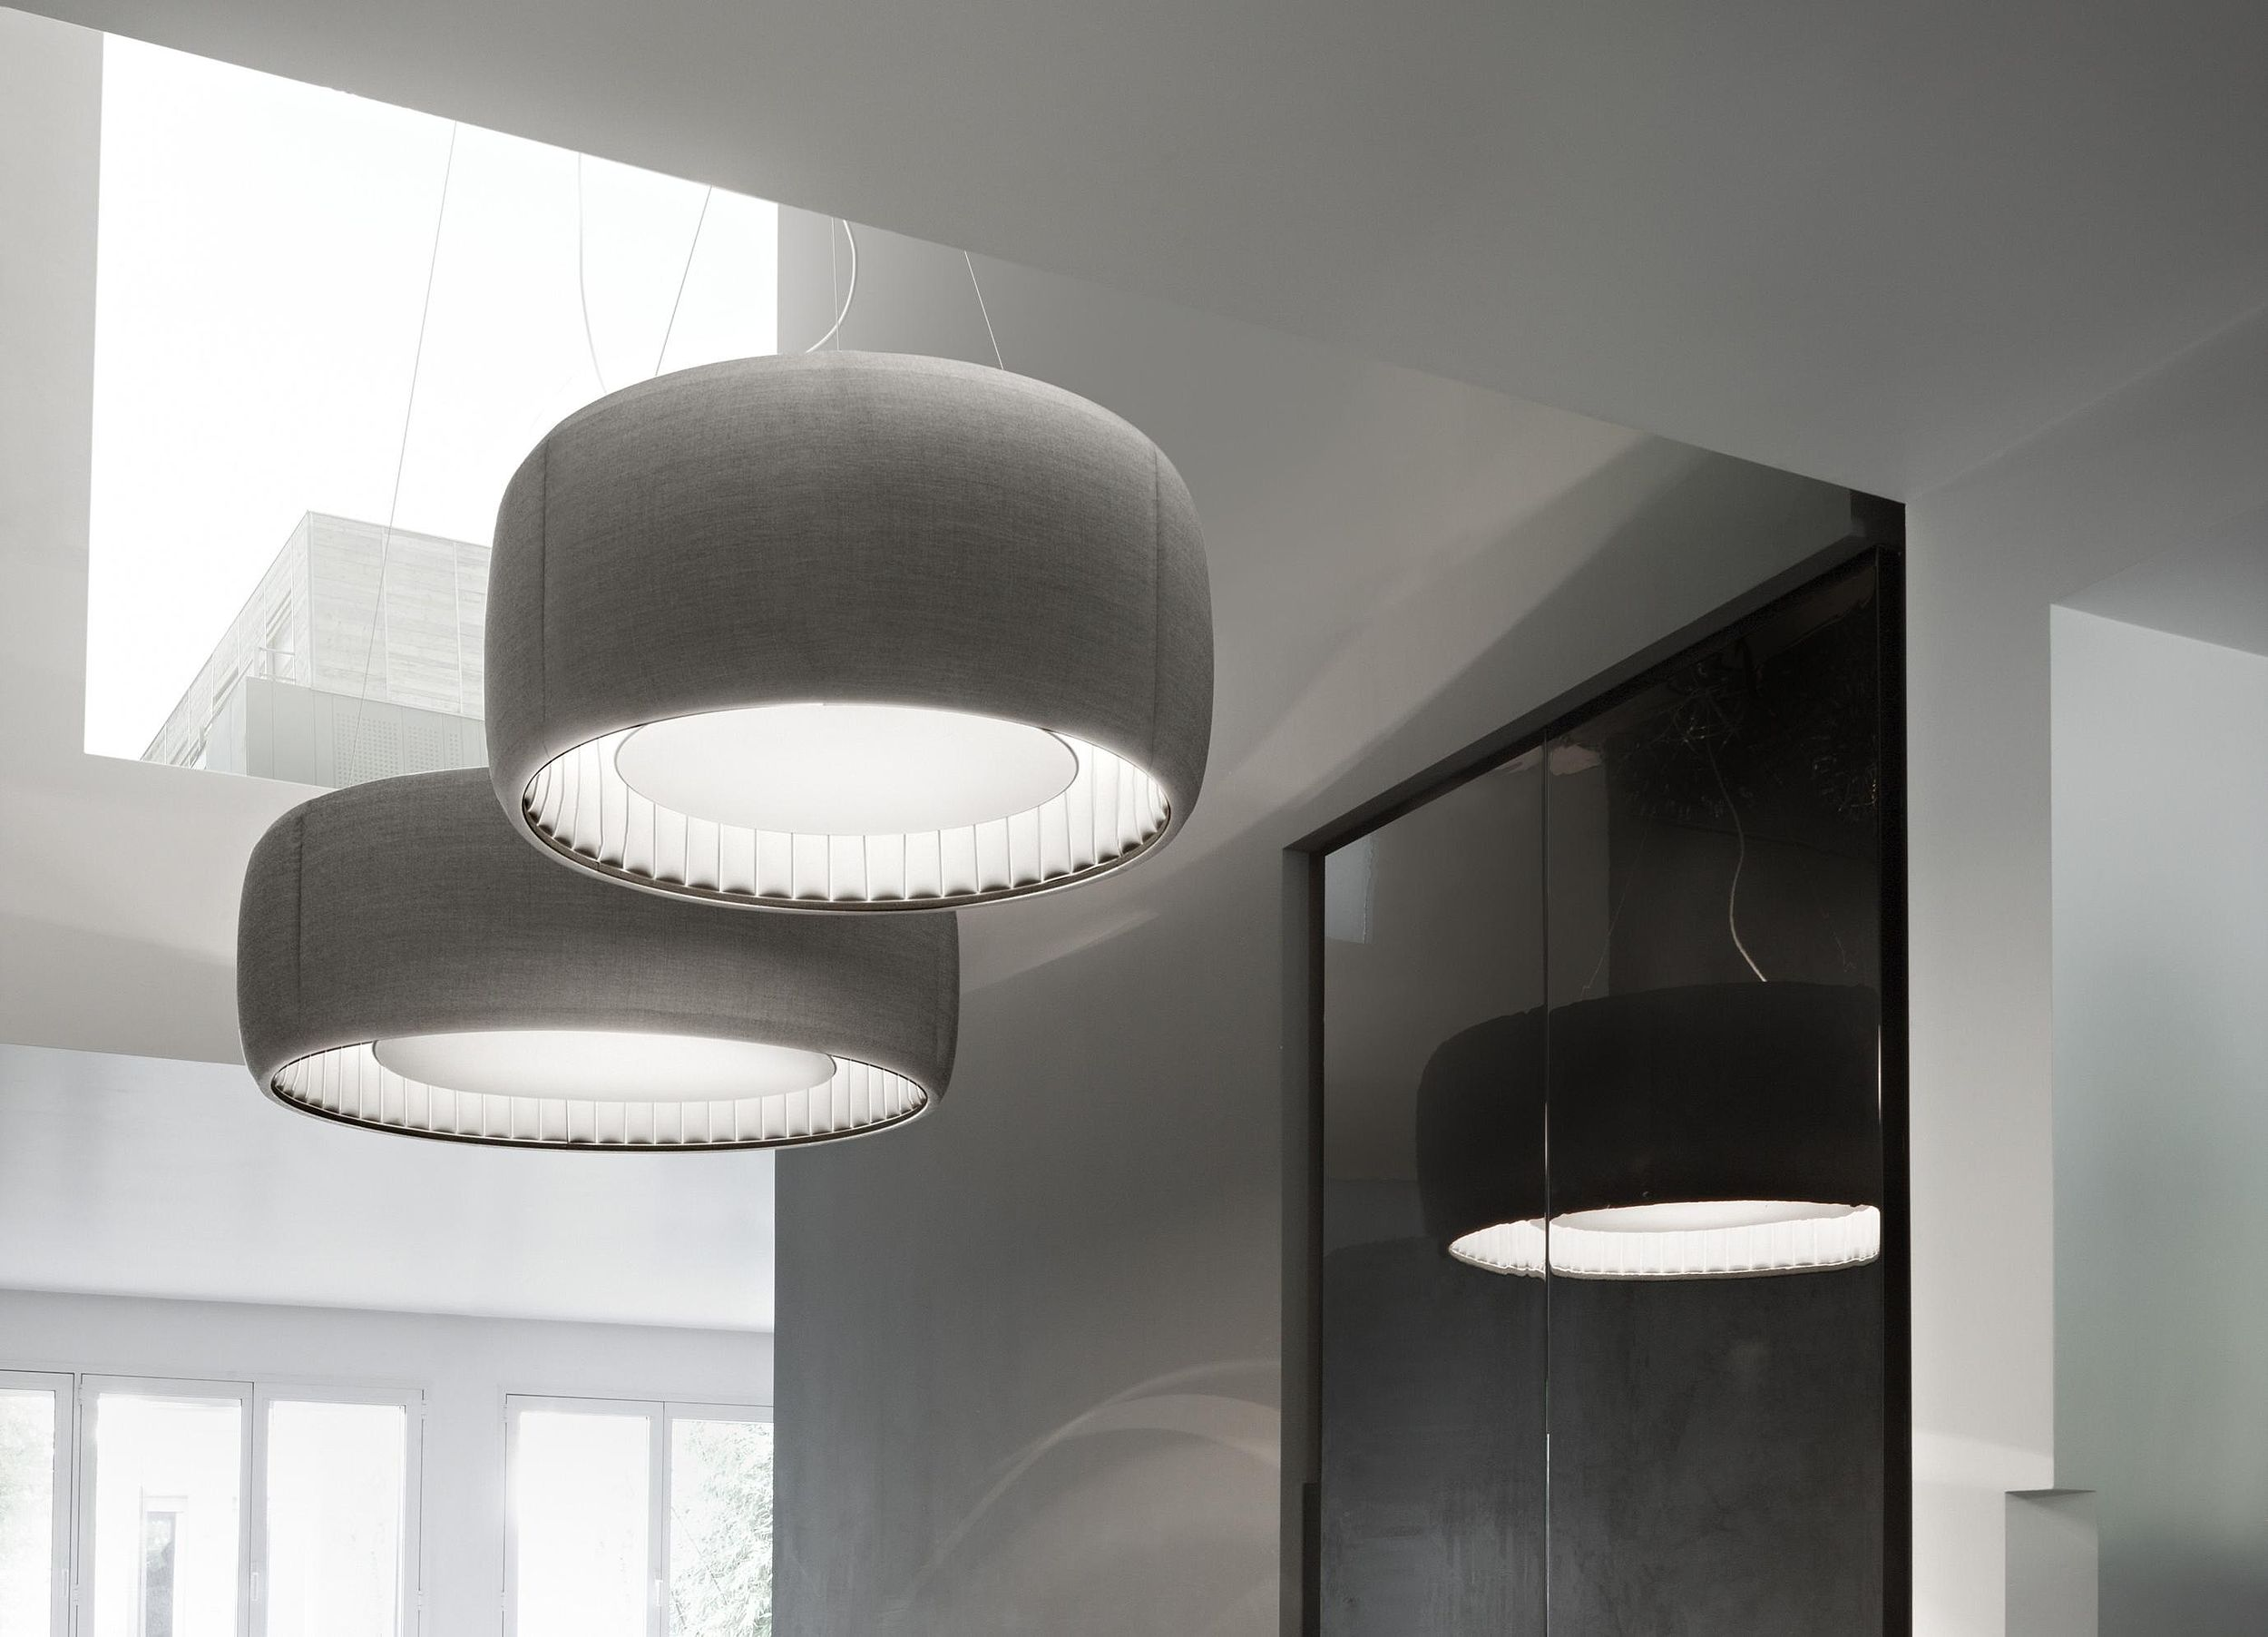 Silenzio lighting and sound absorption system by Monica Armani for Luceplan